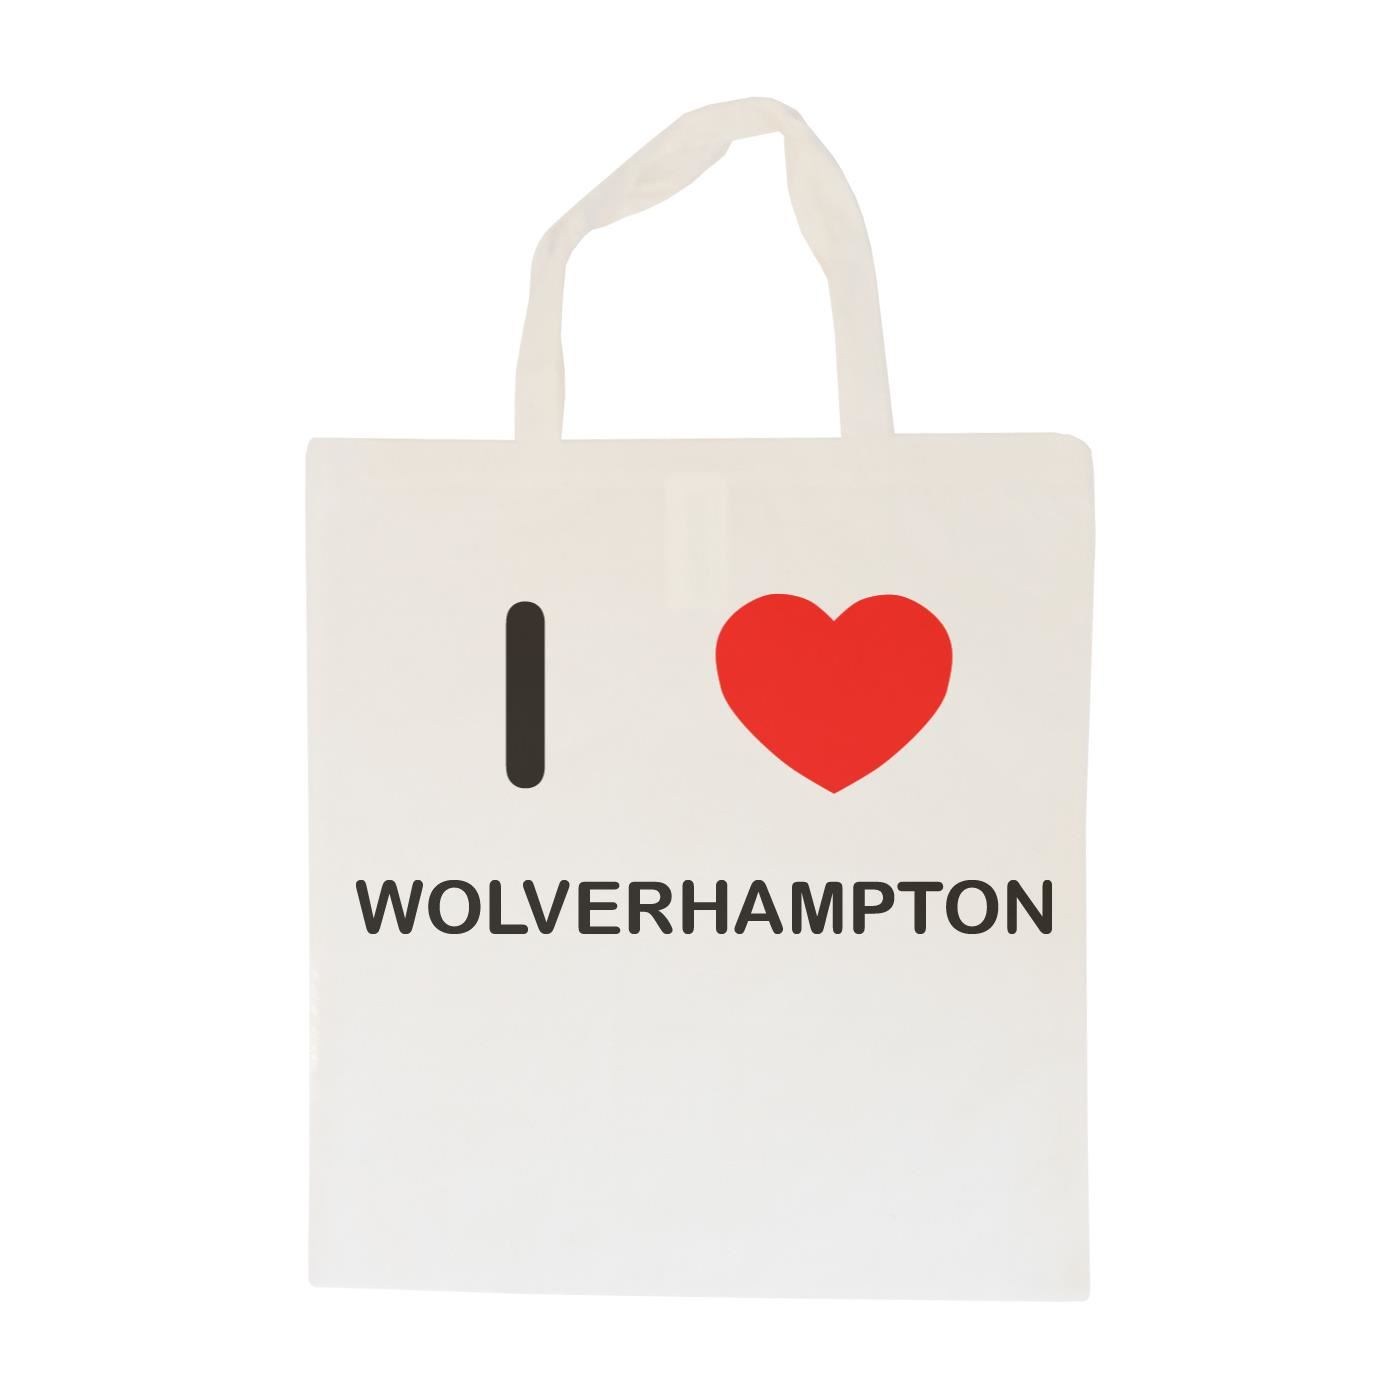 I Love Wolverhampton - Cotton Bag | Size choice Tote, Shopper or Sling